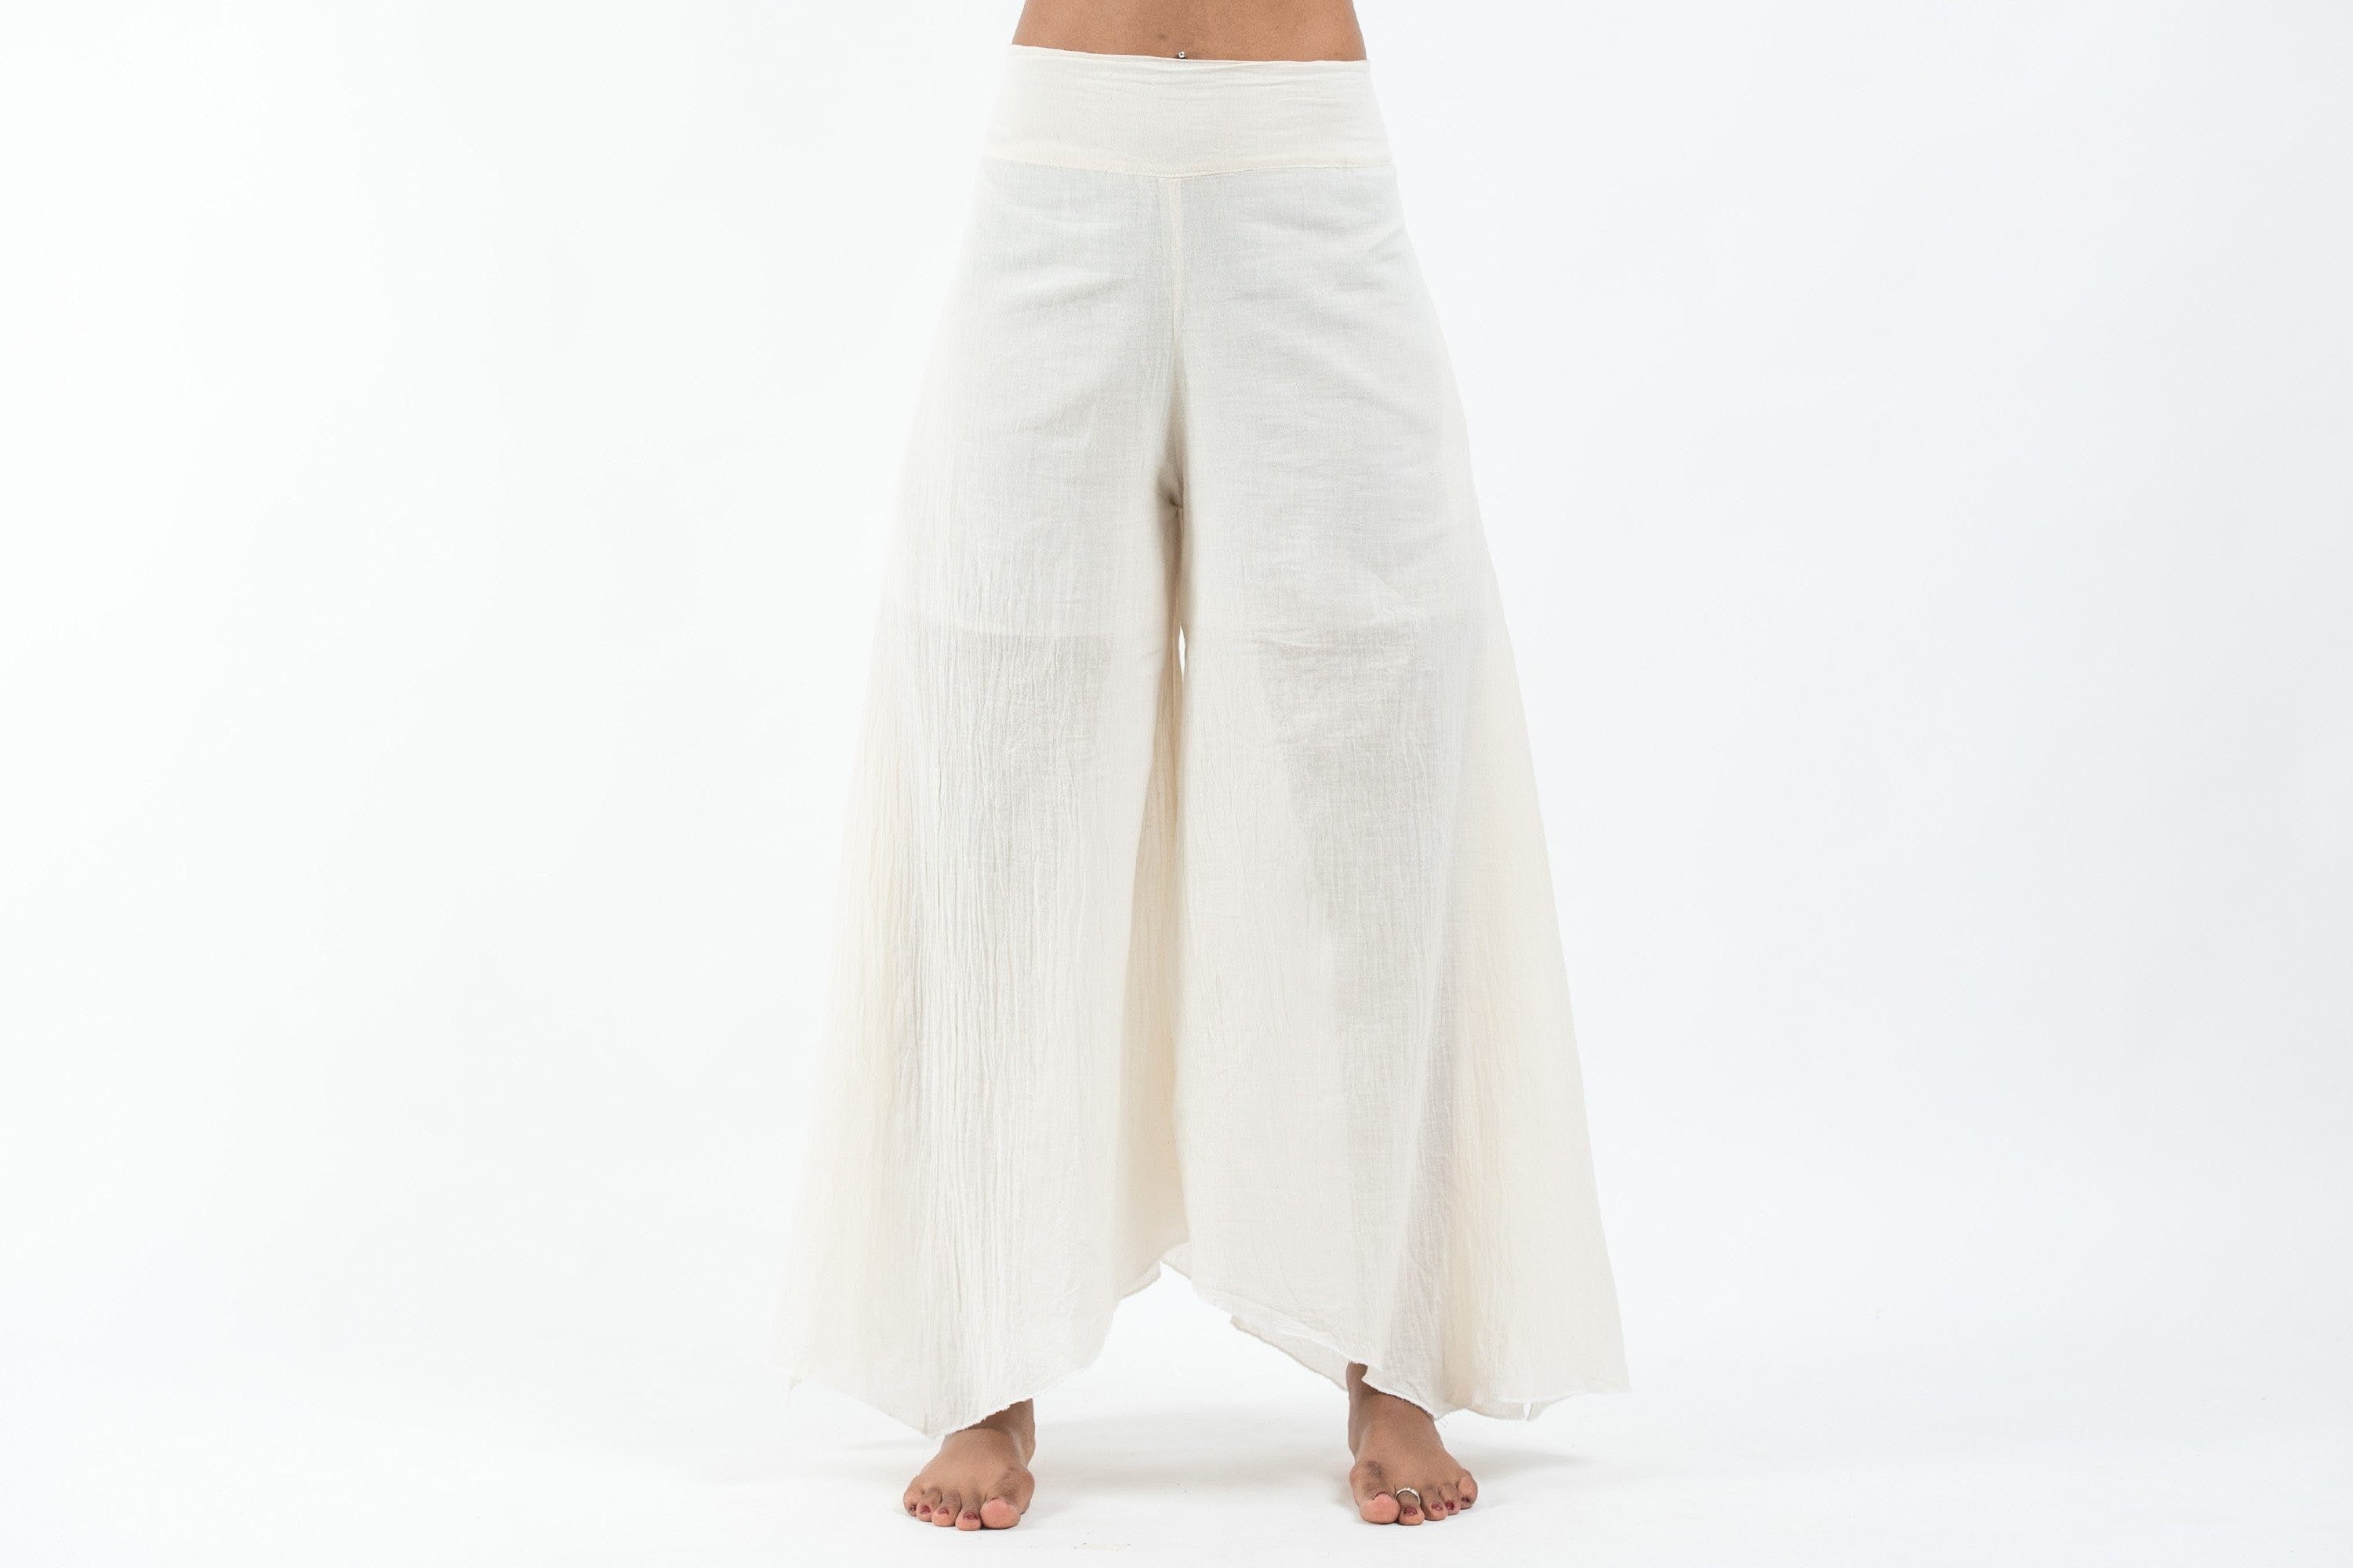 Tinkerbell Thai cotton crinkle wide flowy leg side slit palazzo pant- Cream